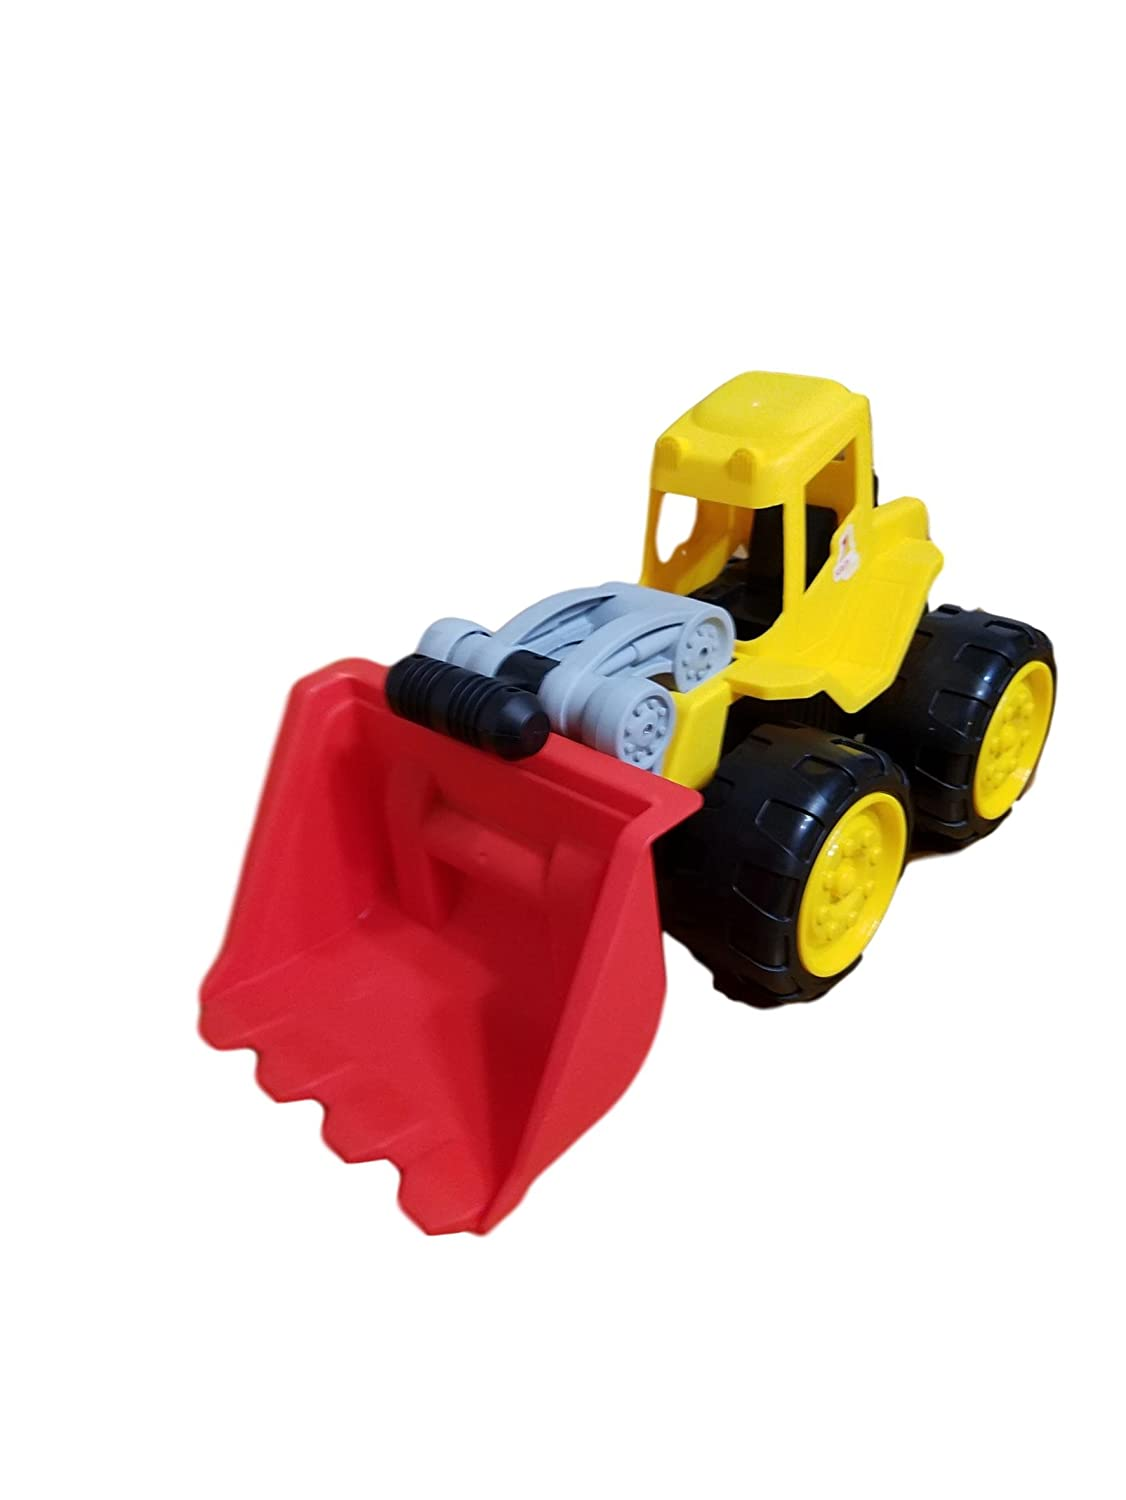 Keflar Toys Durable Big and Strong Loader